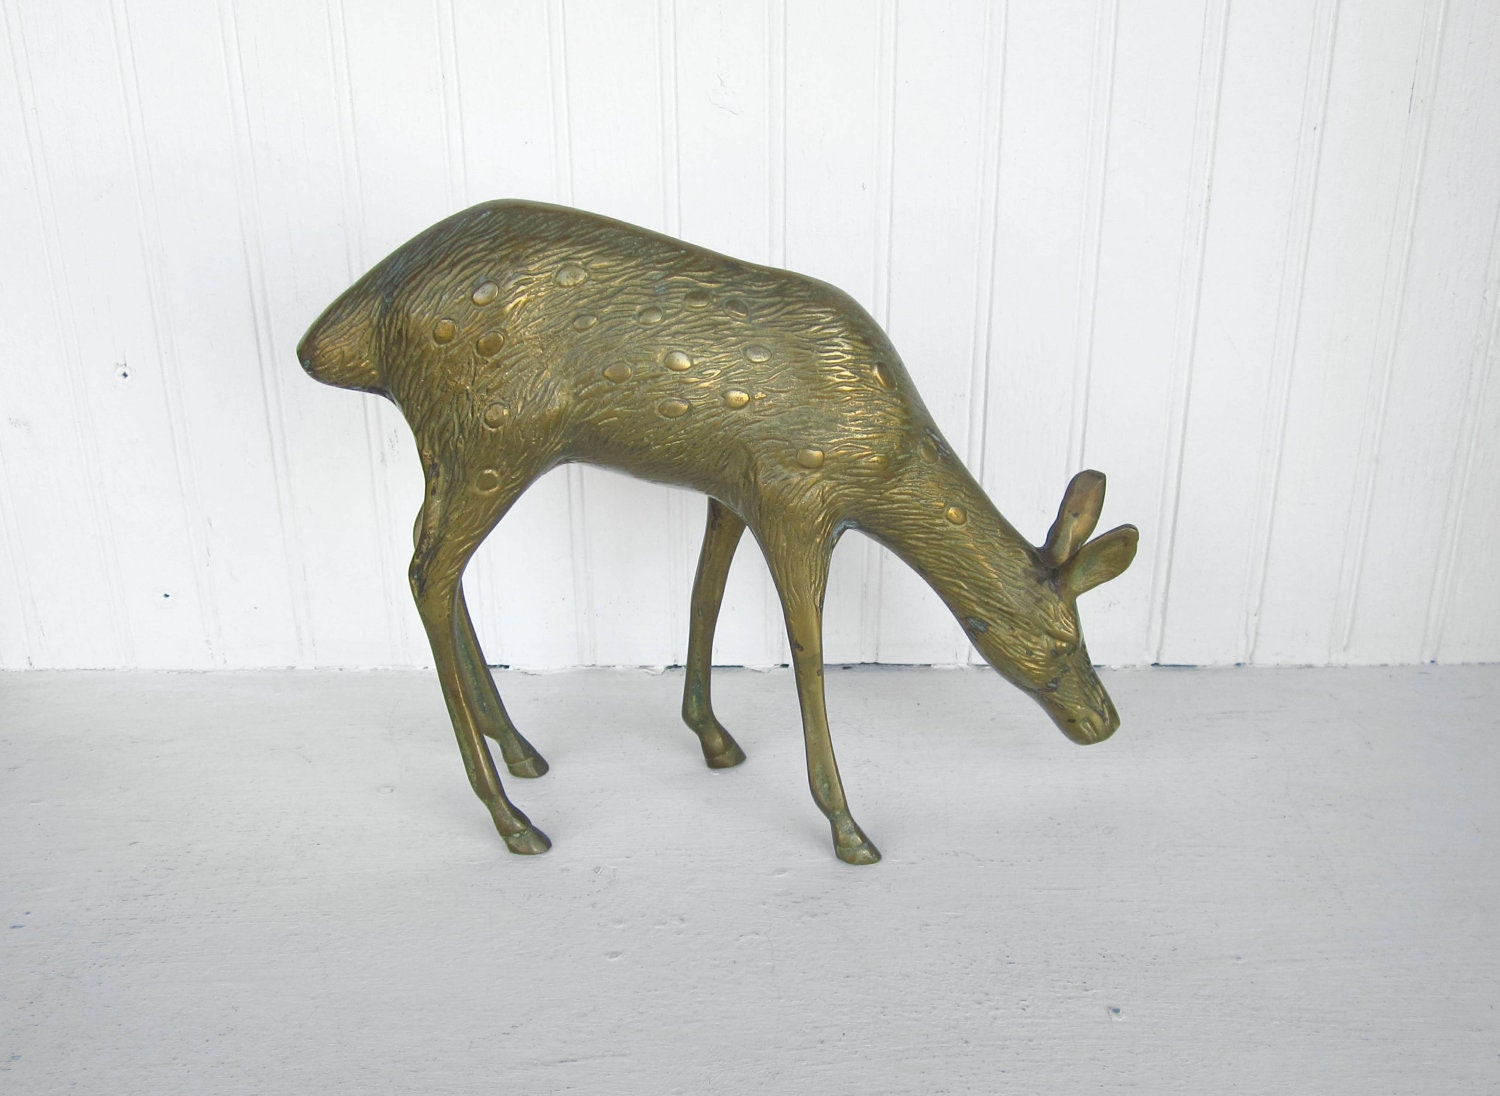 Vintage Brass Deer Figurine For Home Decor Display By